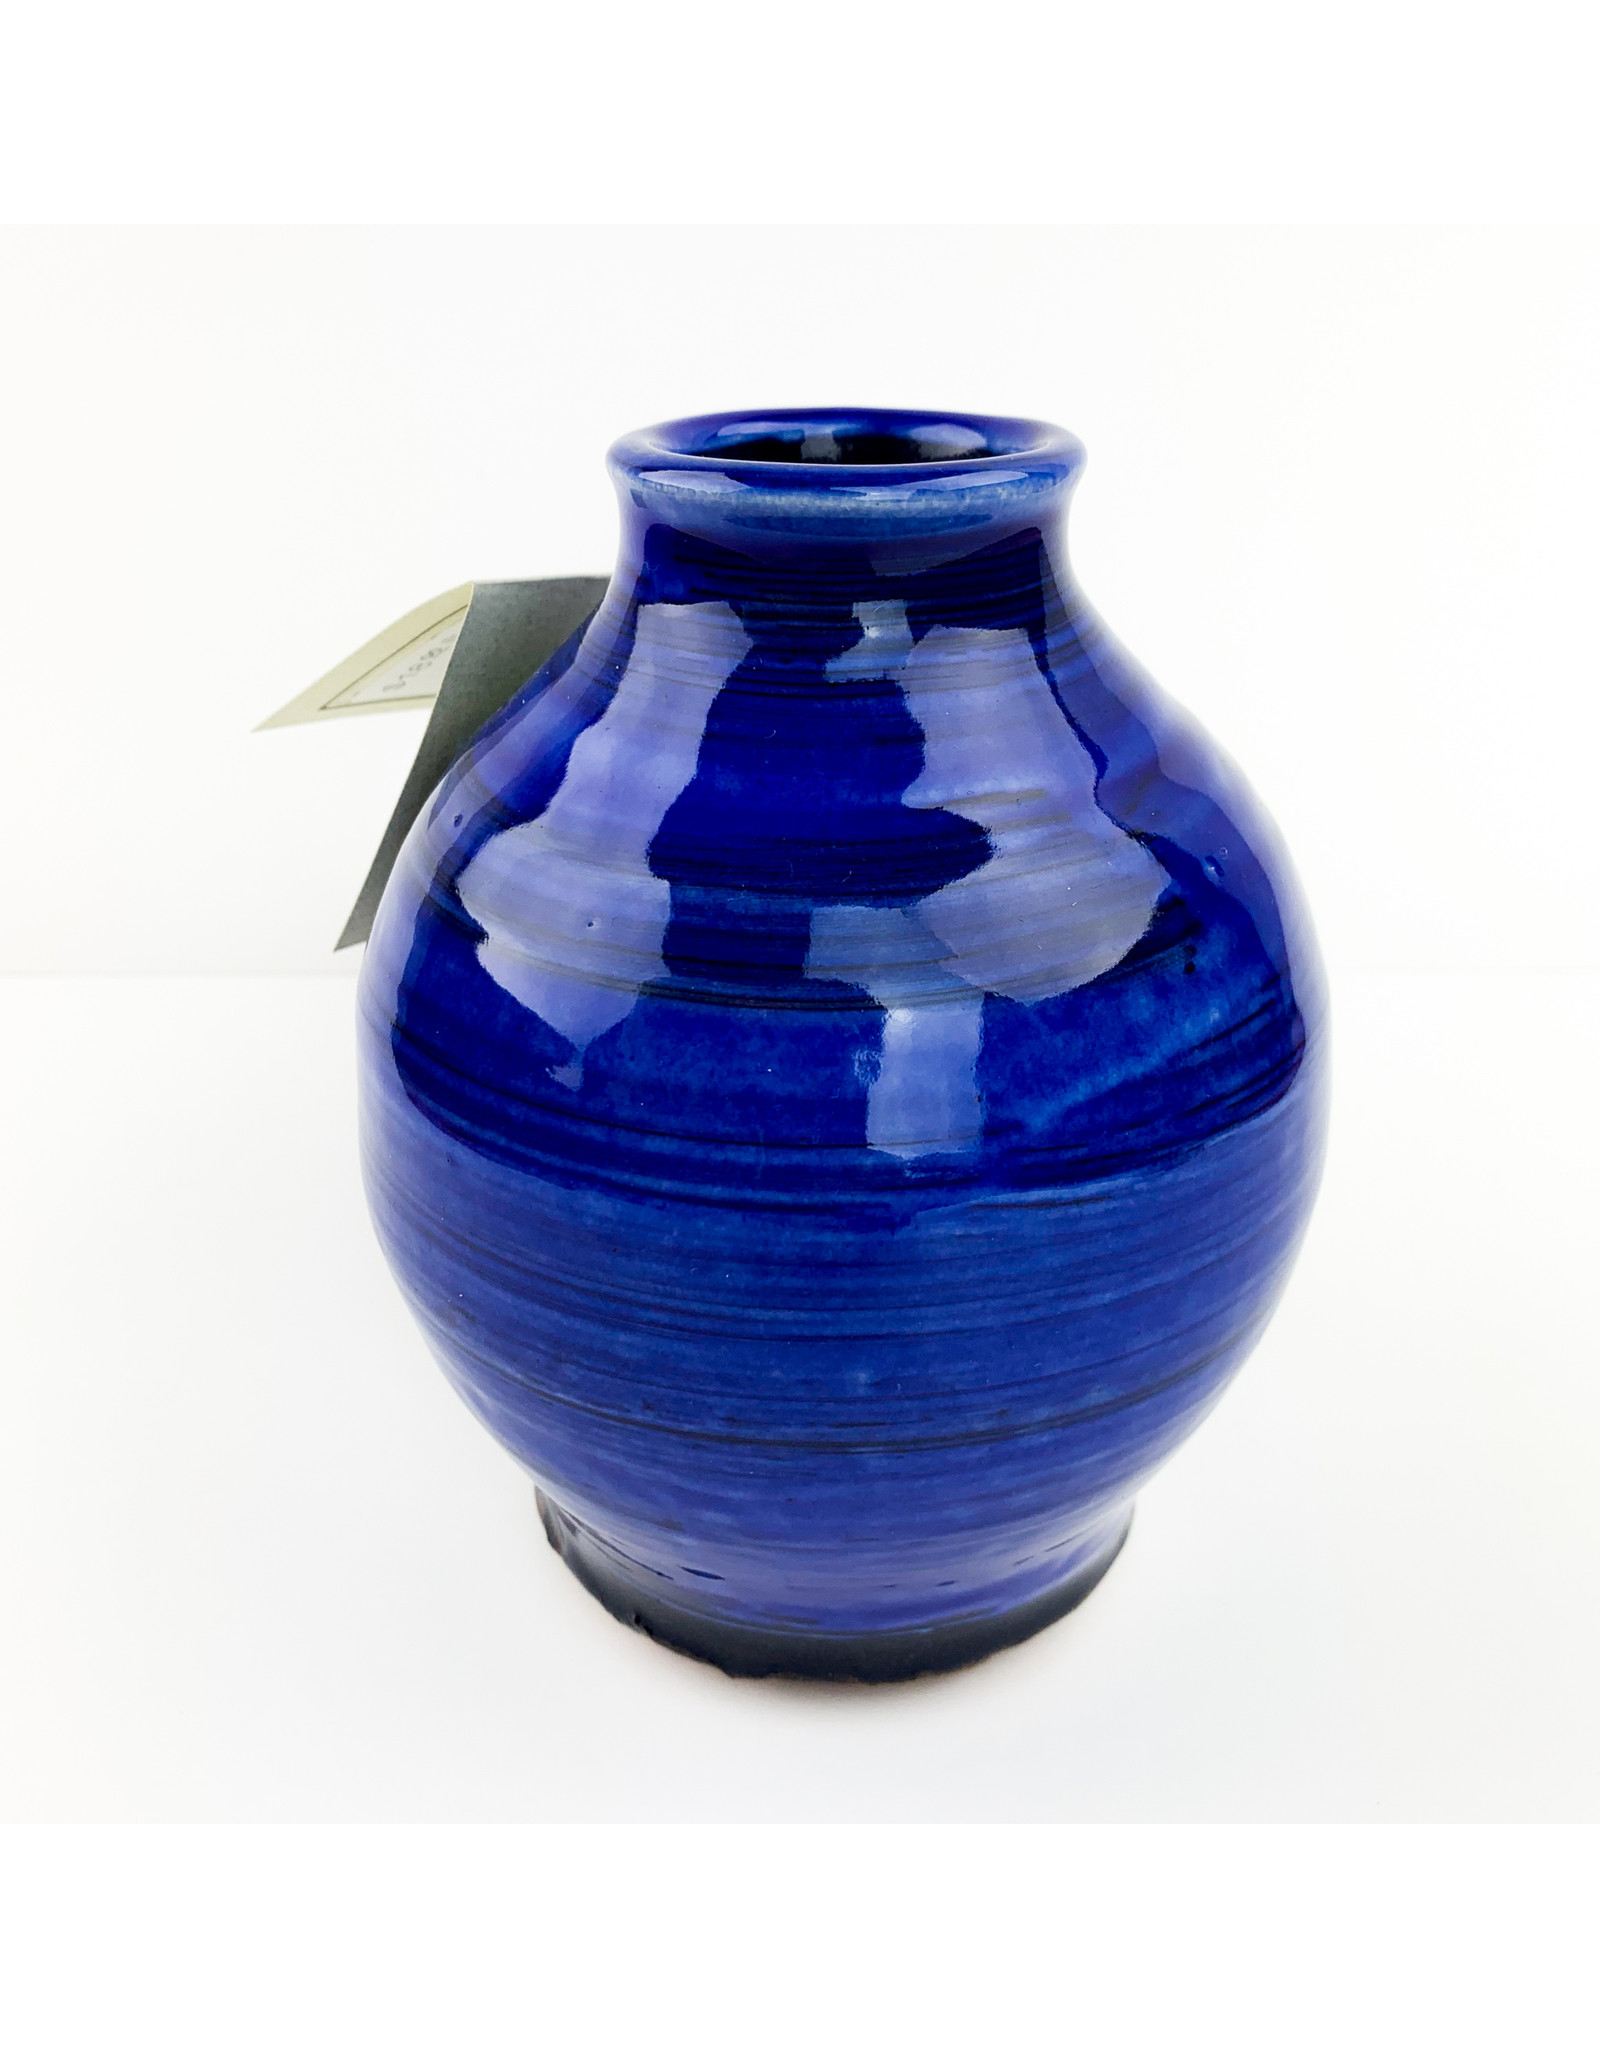 Frog town Pottery-consignment Blue Vases (766)